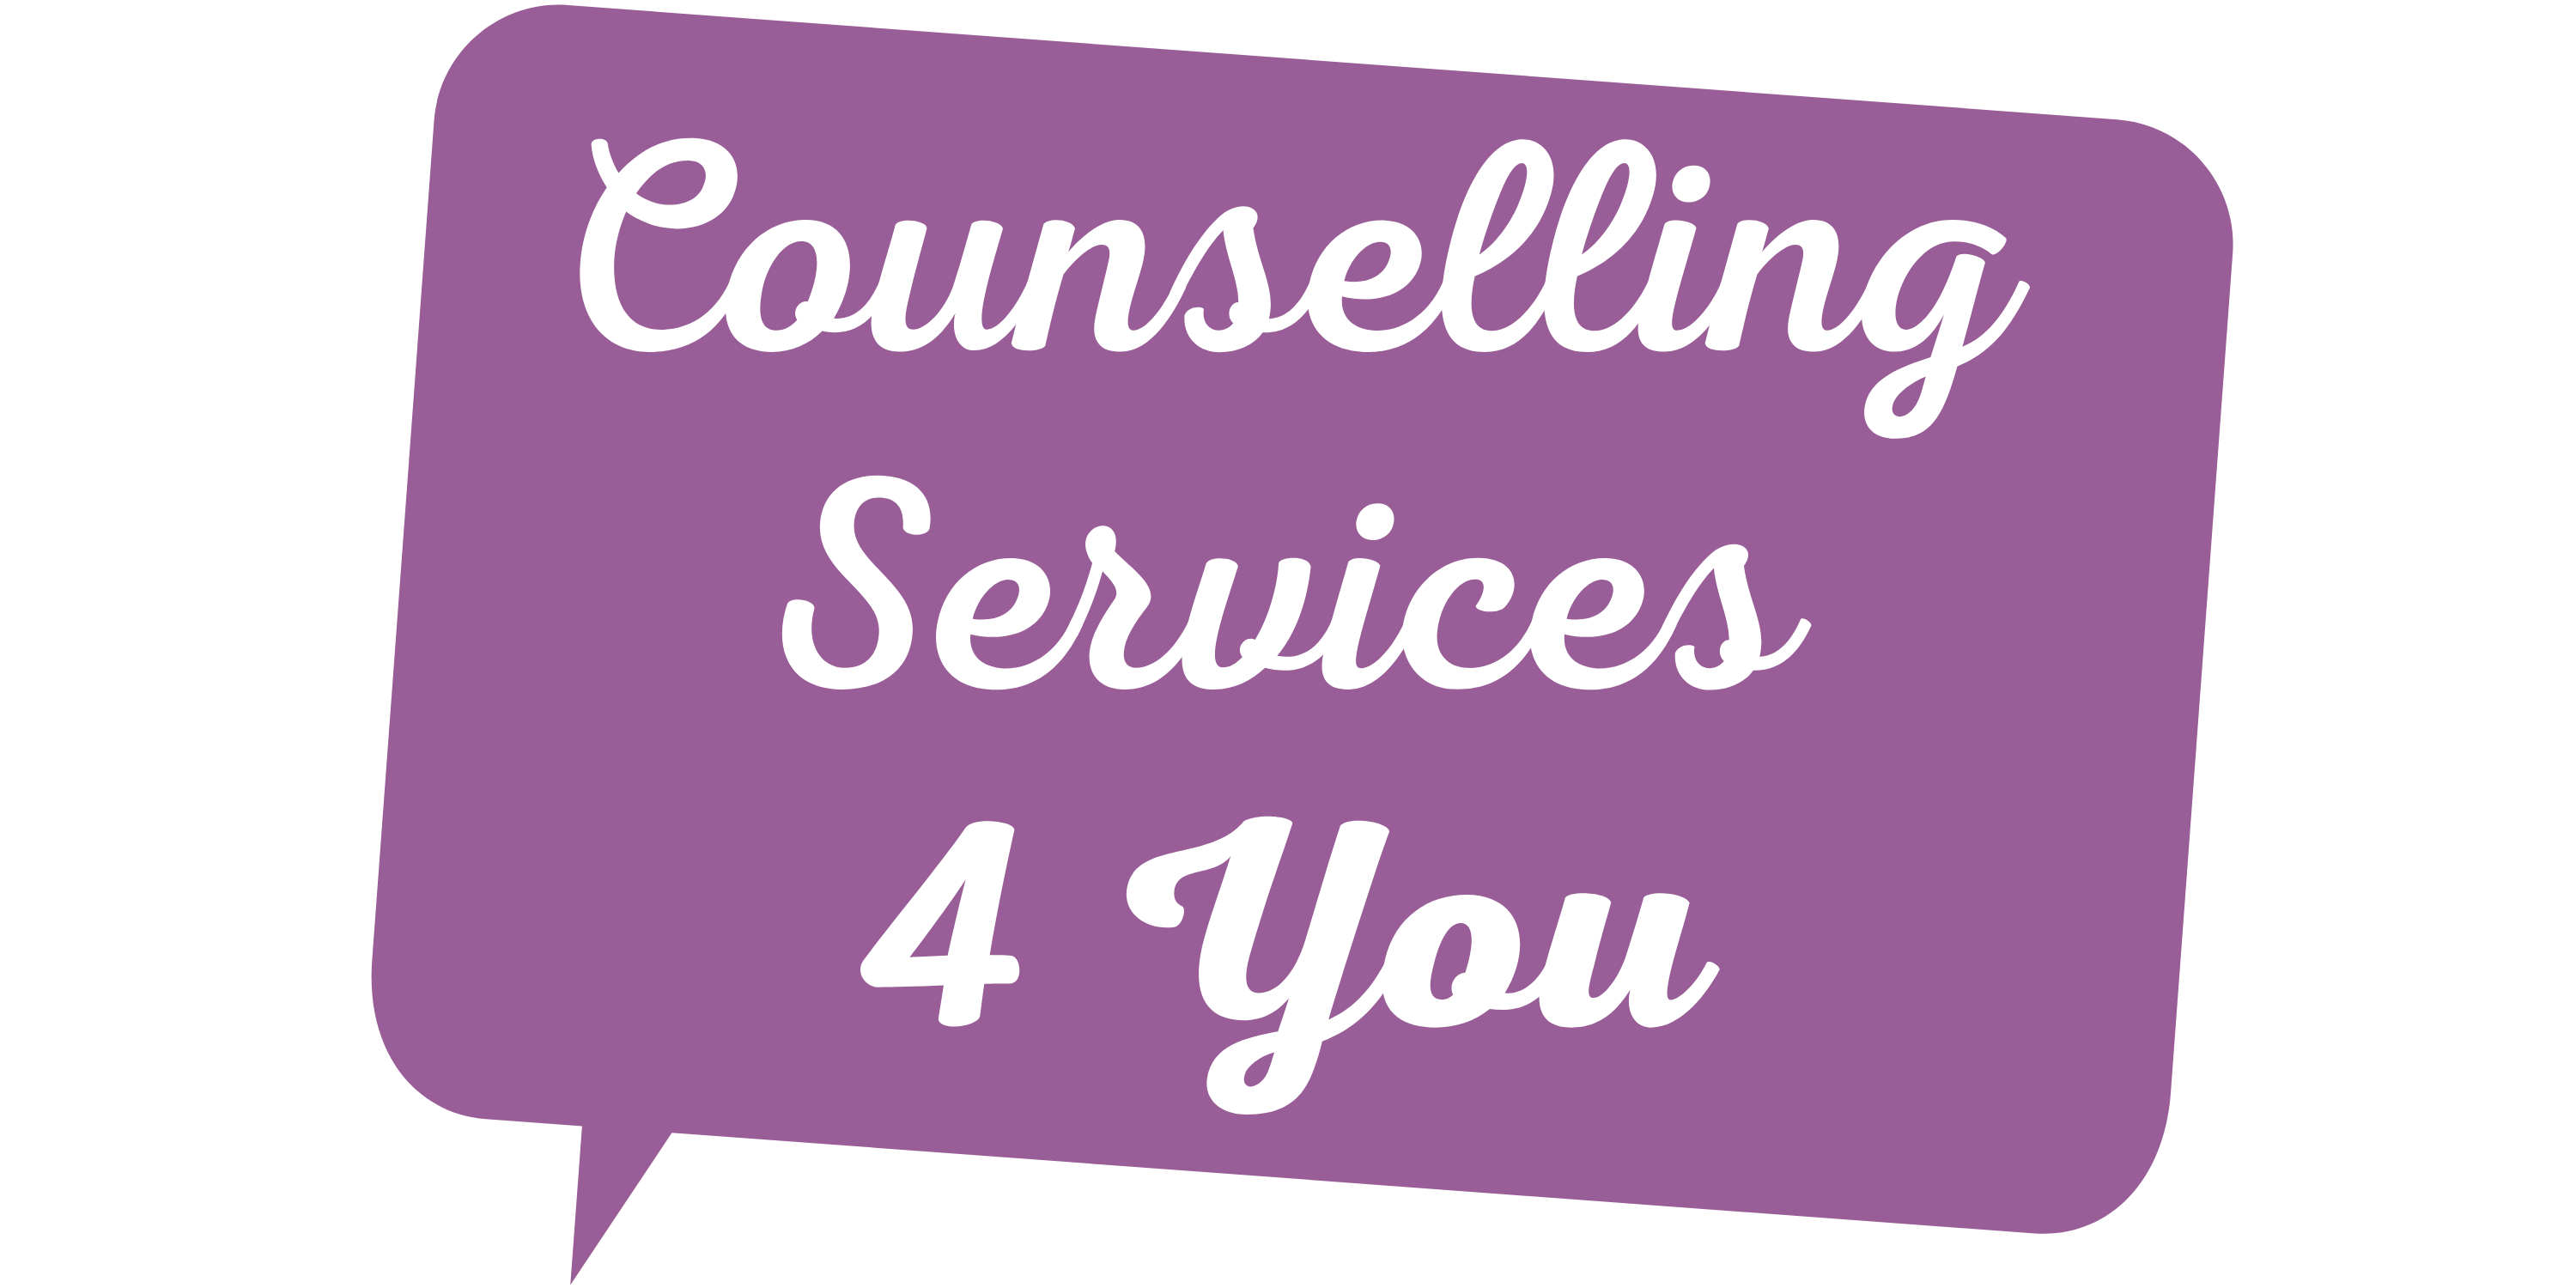 Counselling Services 4 You